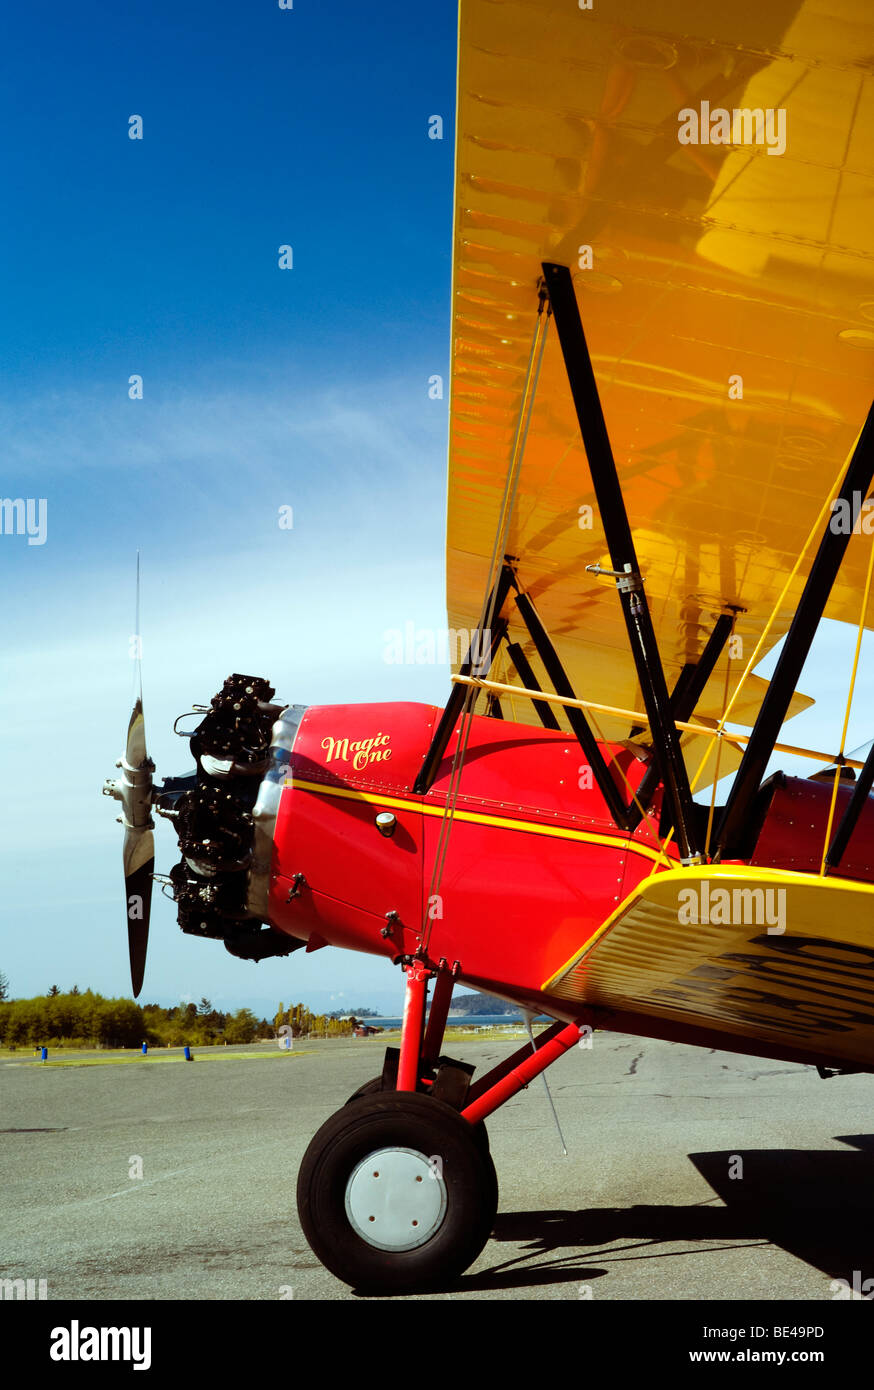 The old Waco bi-plane at the airport ready to fly and kiss the blue sky good morning. Stock Photo